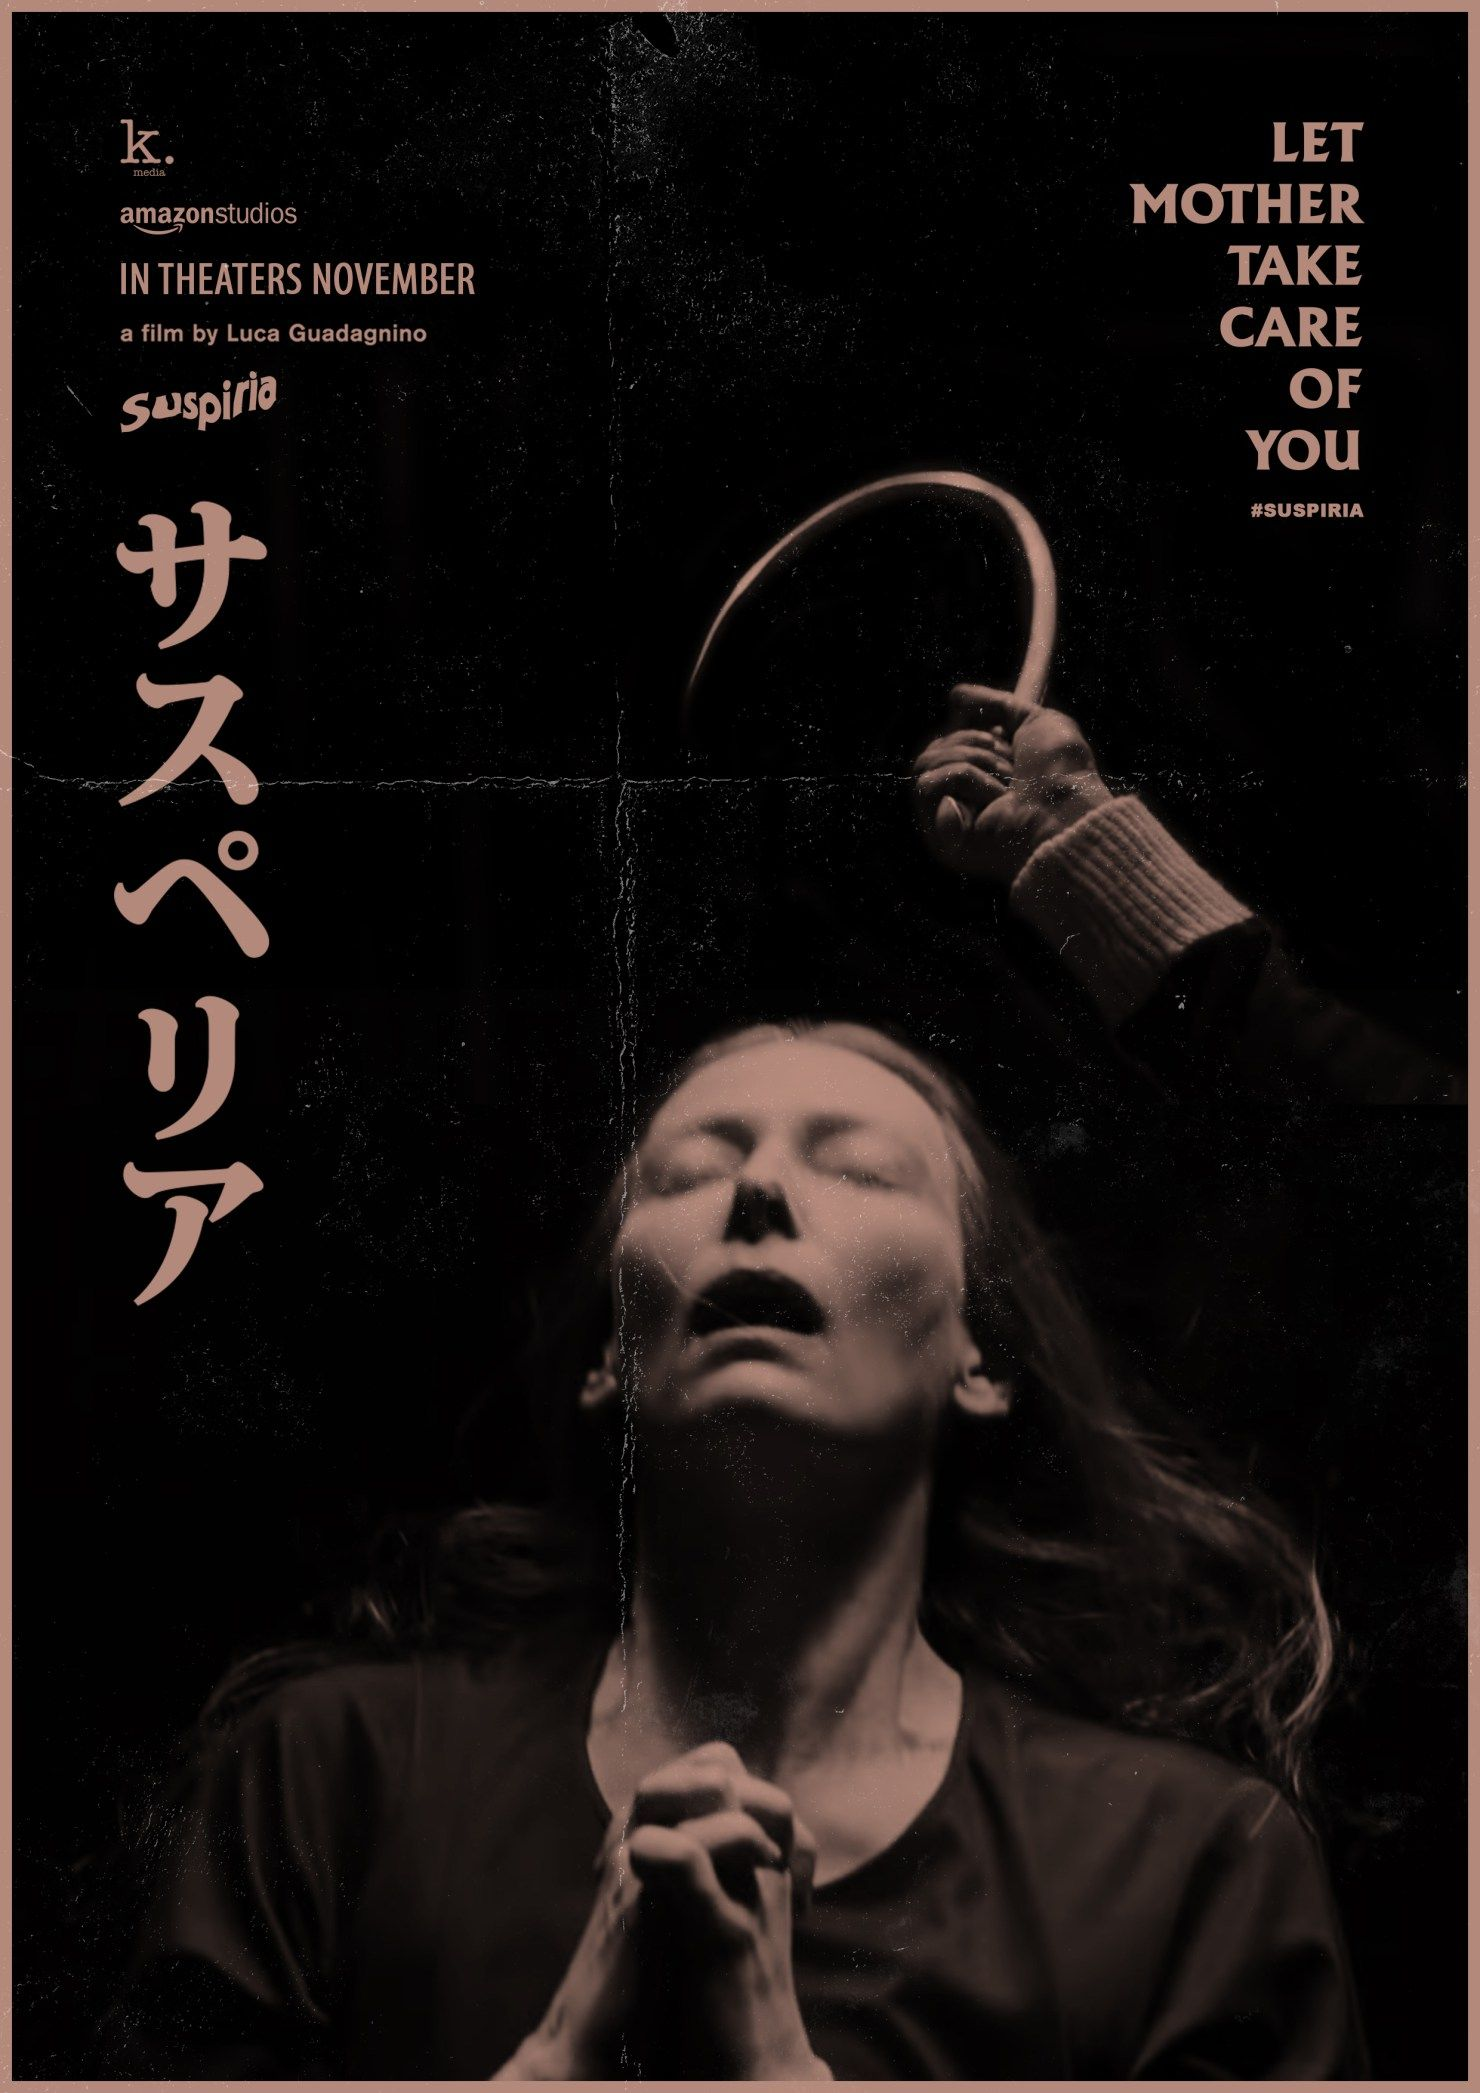 Artists posters for the suspiria remake pay tribute to